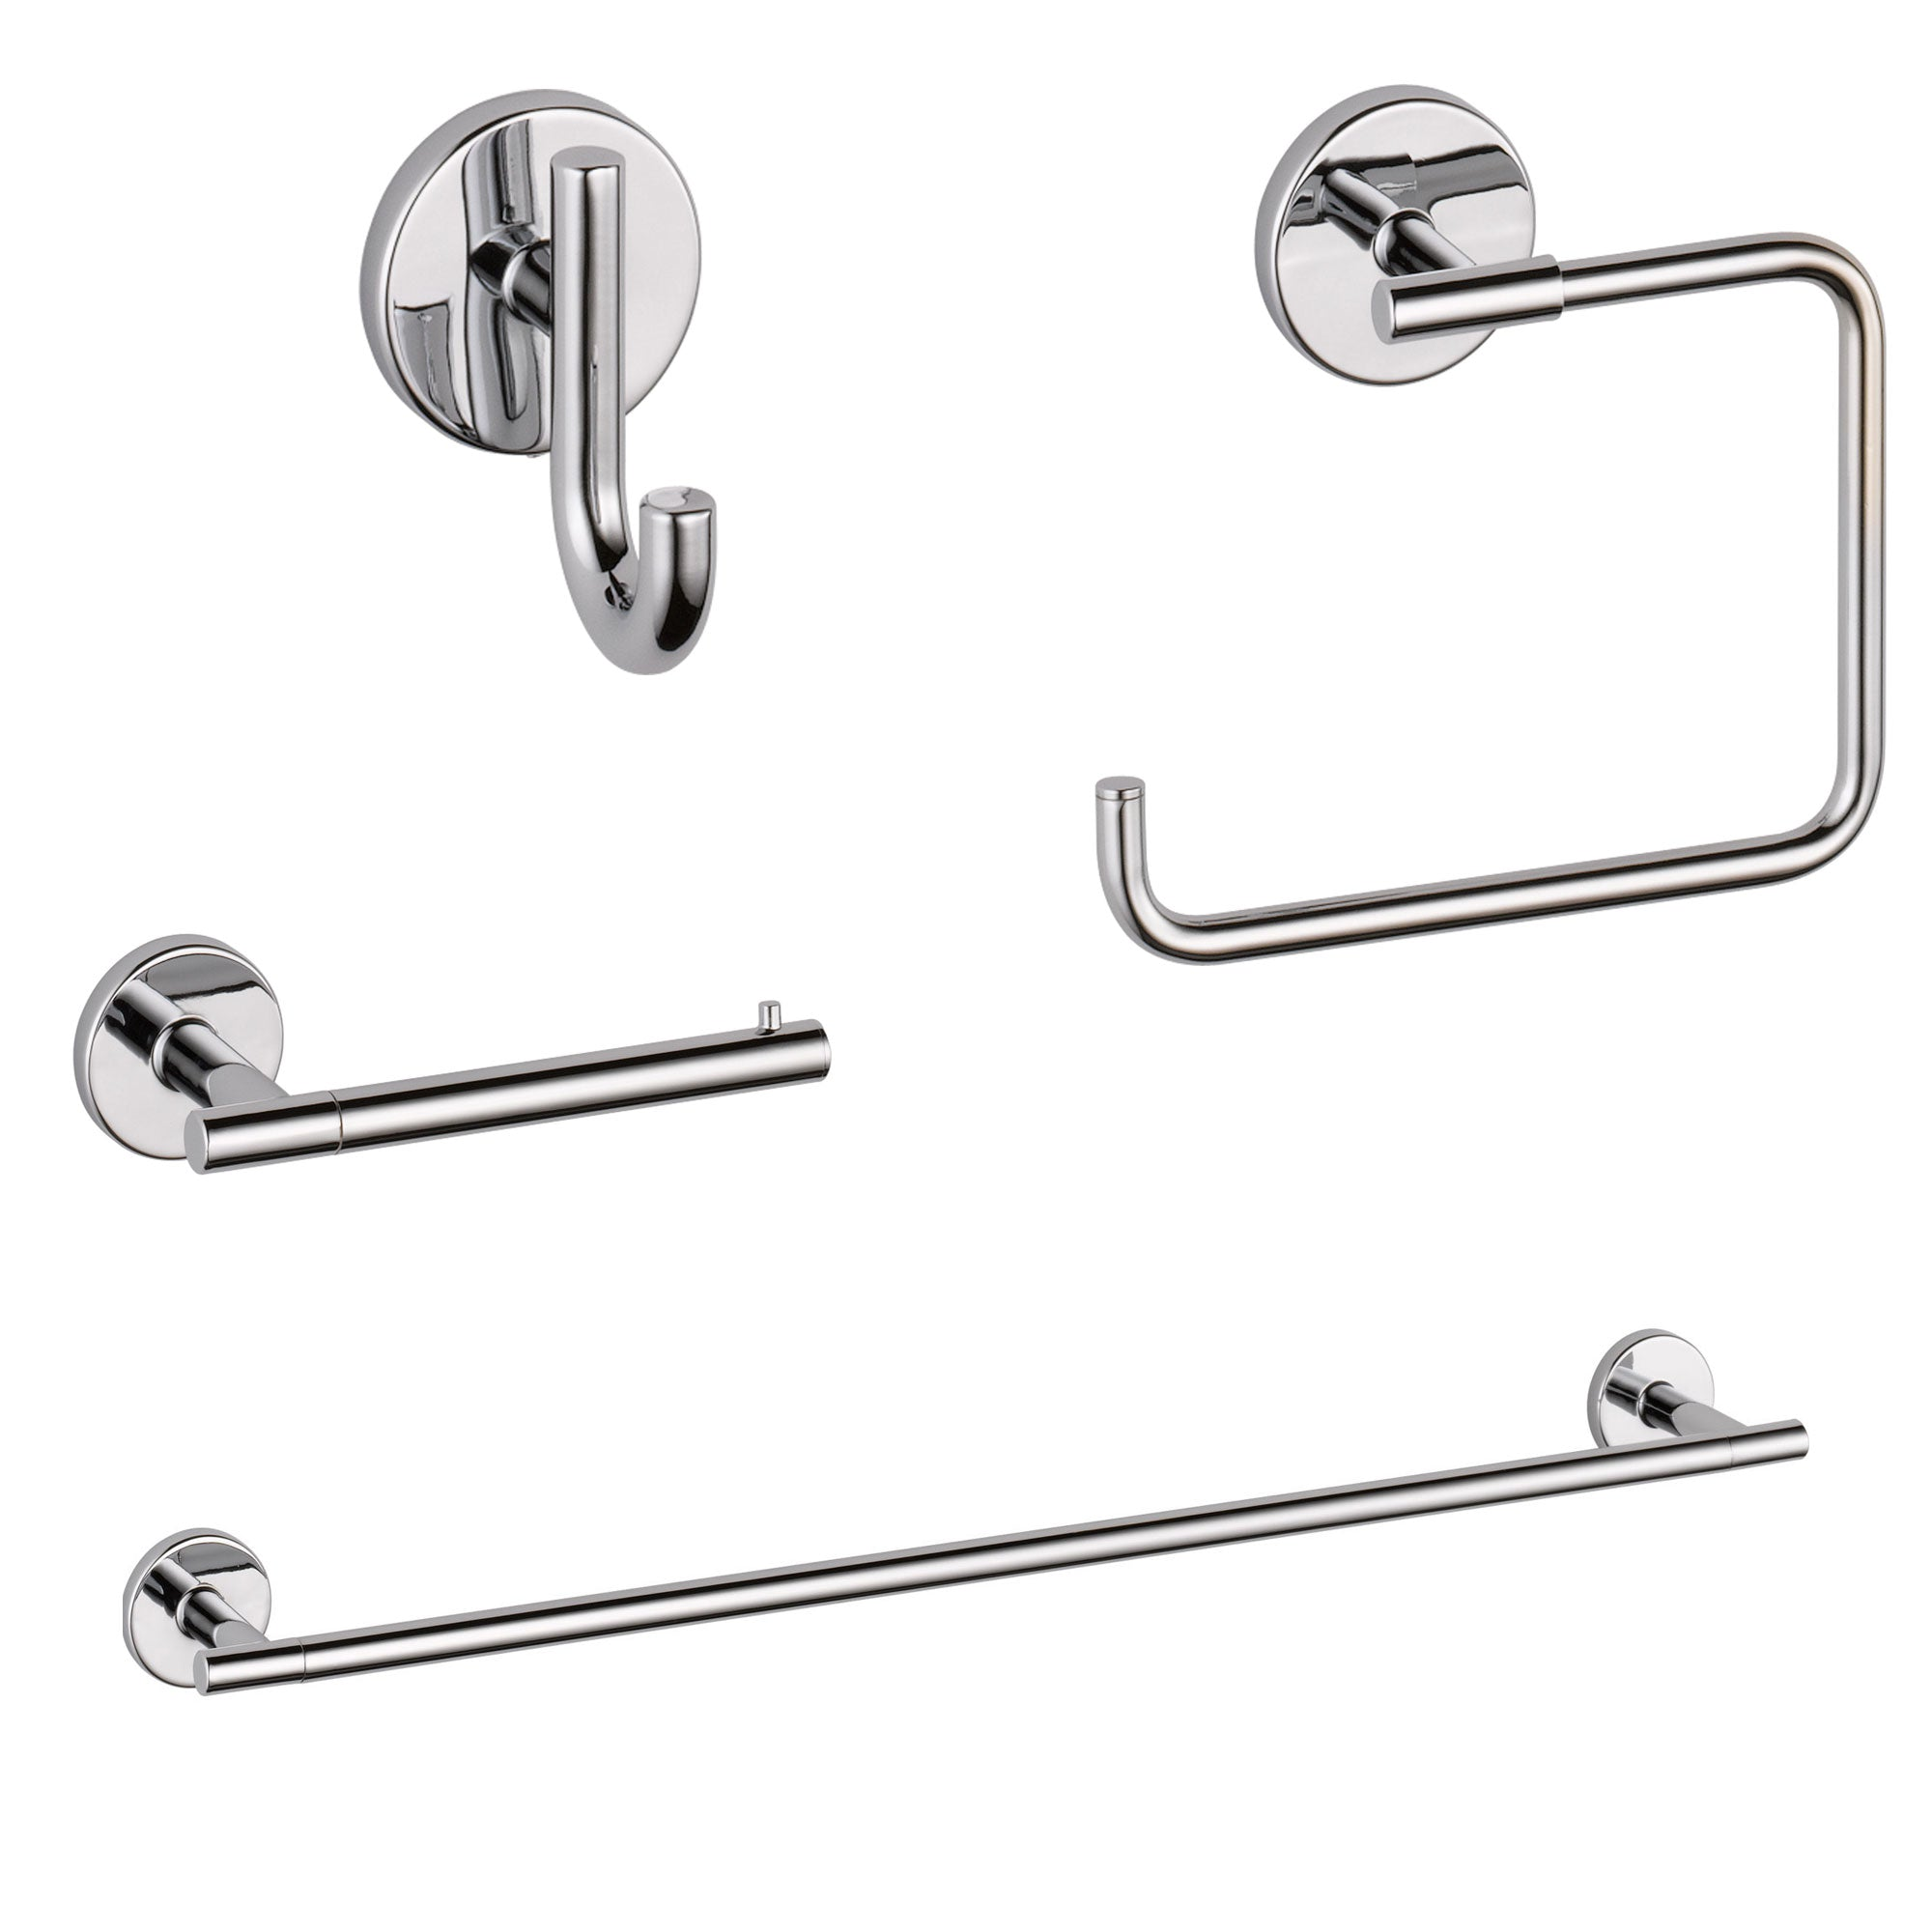 "Delta Trinsic Chrome STANDARD Bathroom Accessory Set Includes: 24"" Towel Bar, Toilet Paper Holder, Robe Hook, and Towel Ring D10002AP"